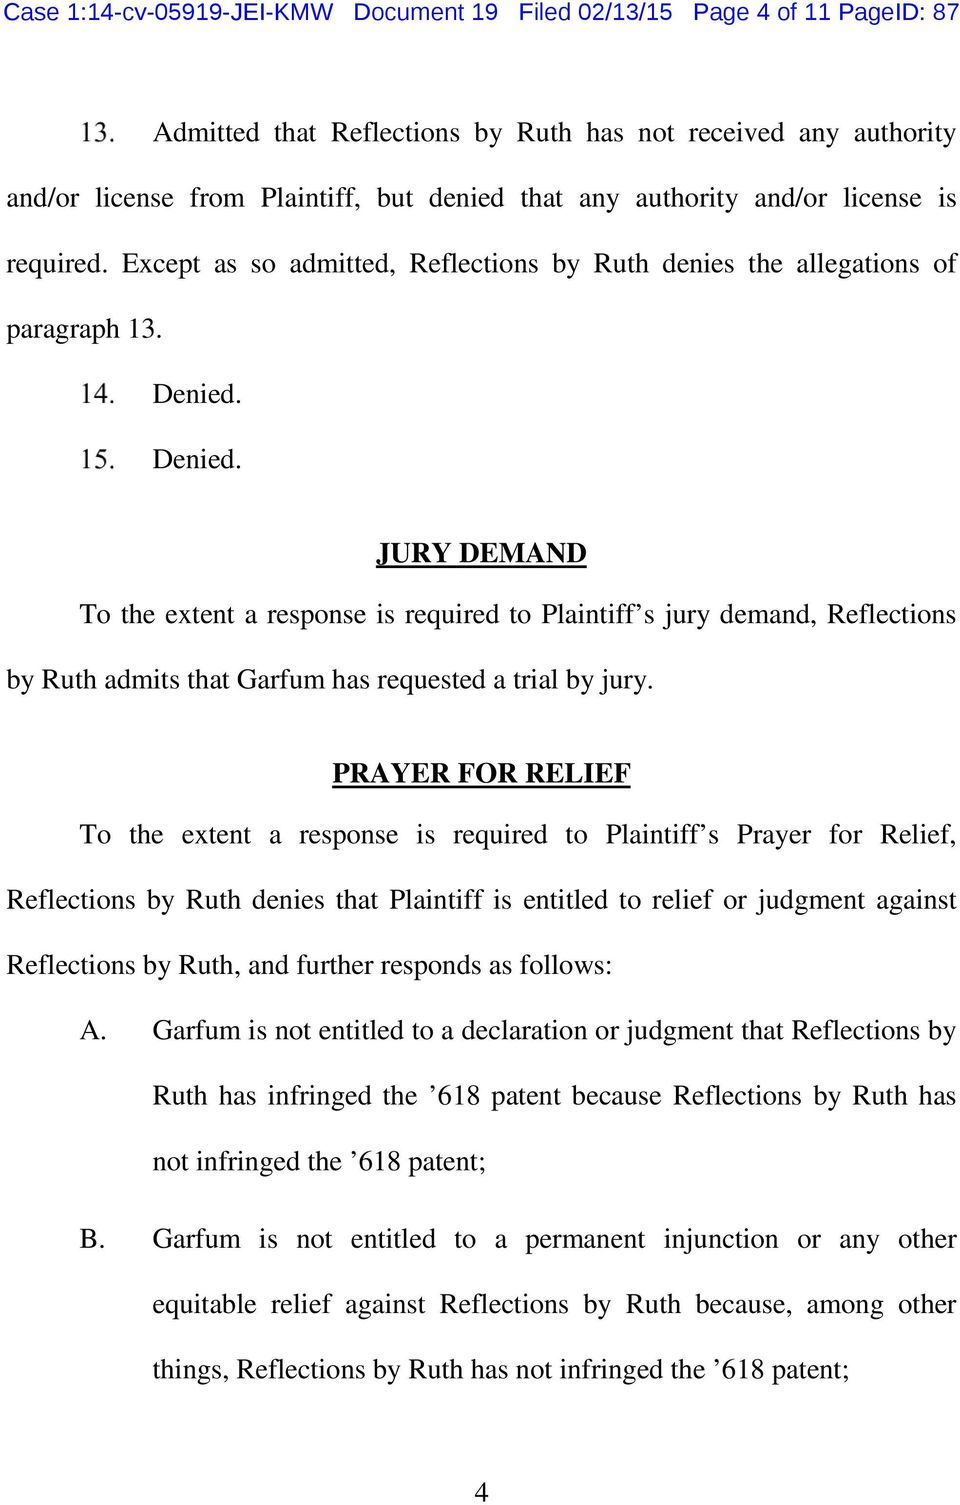 JURY DEMAND To the extent a response is required to Plaintiff s jury demand, Reflections by Ruth admits that Garfum has requested a trial by jury.